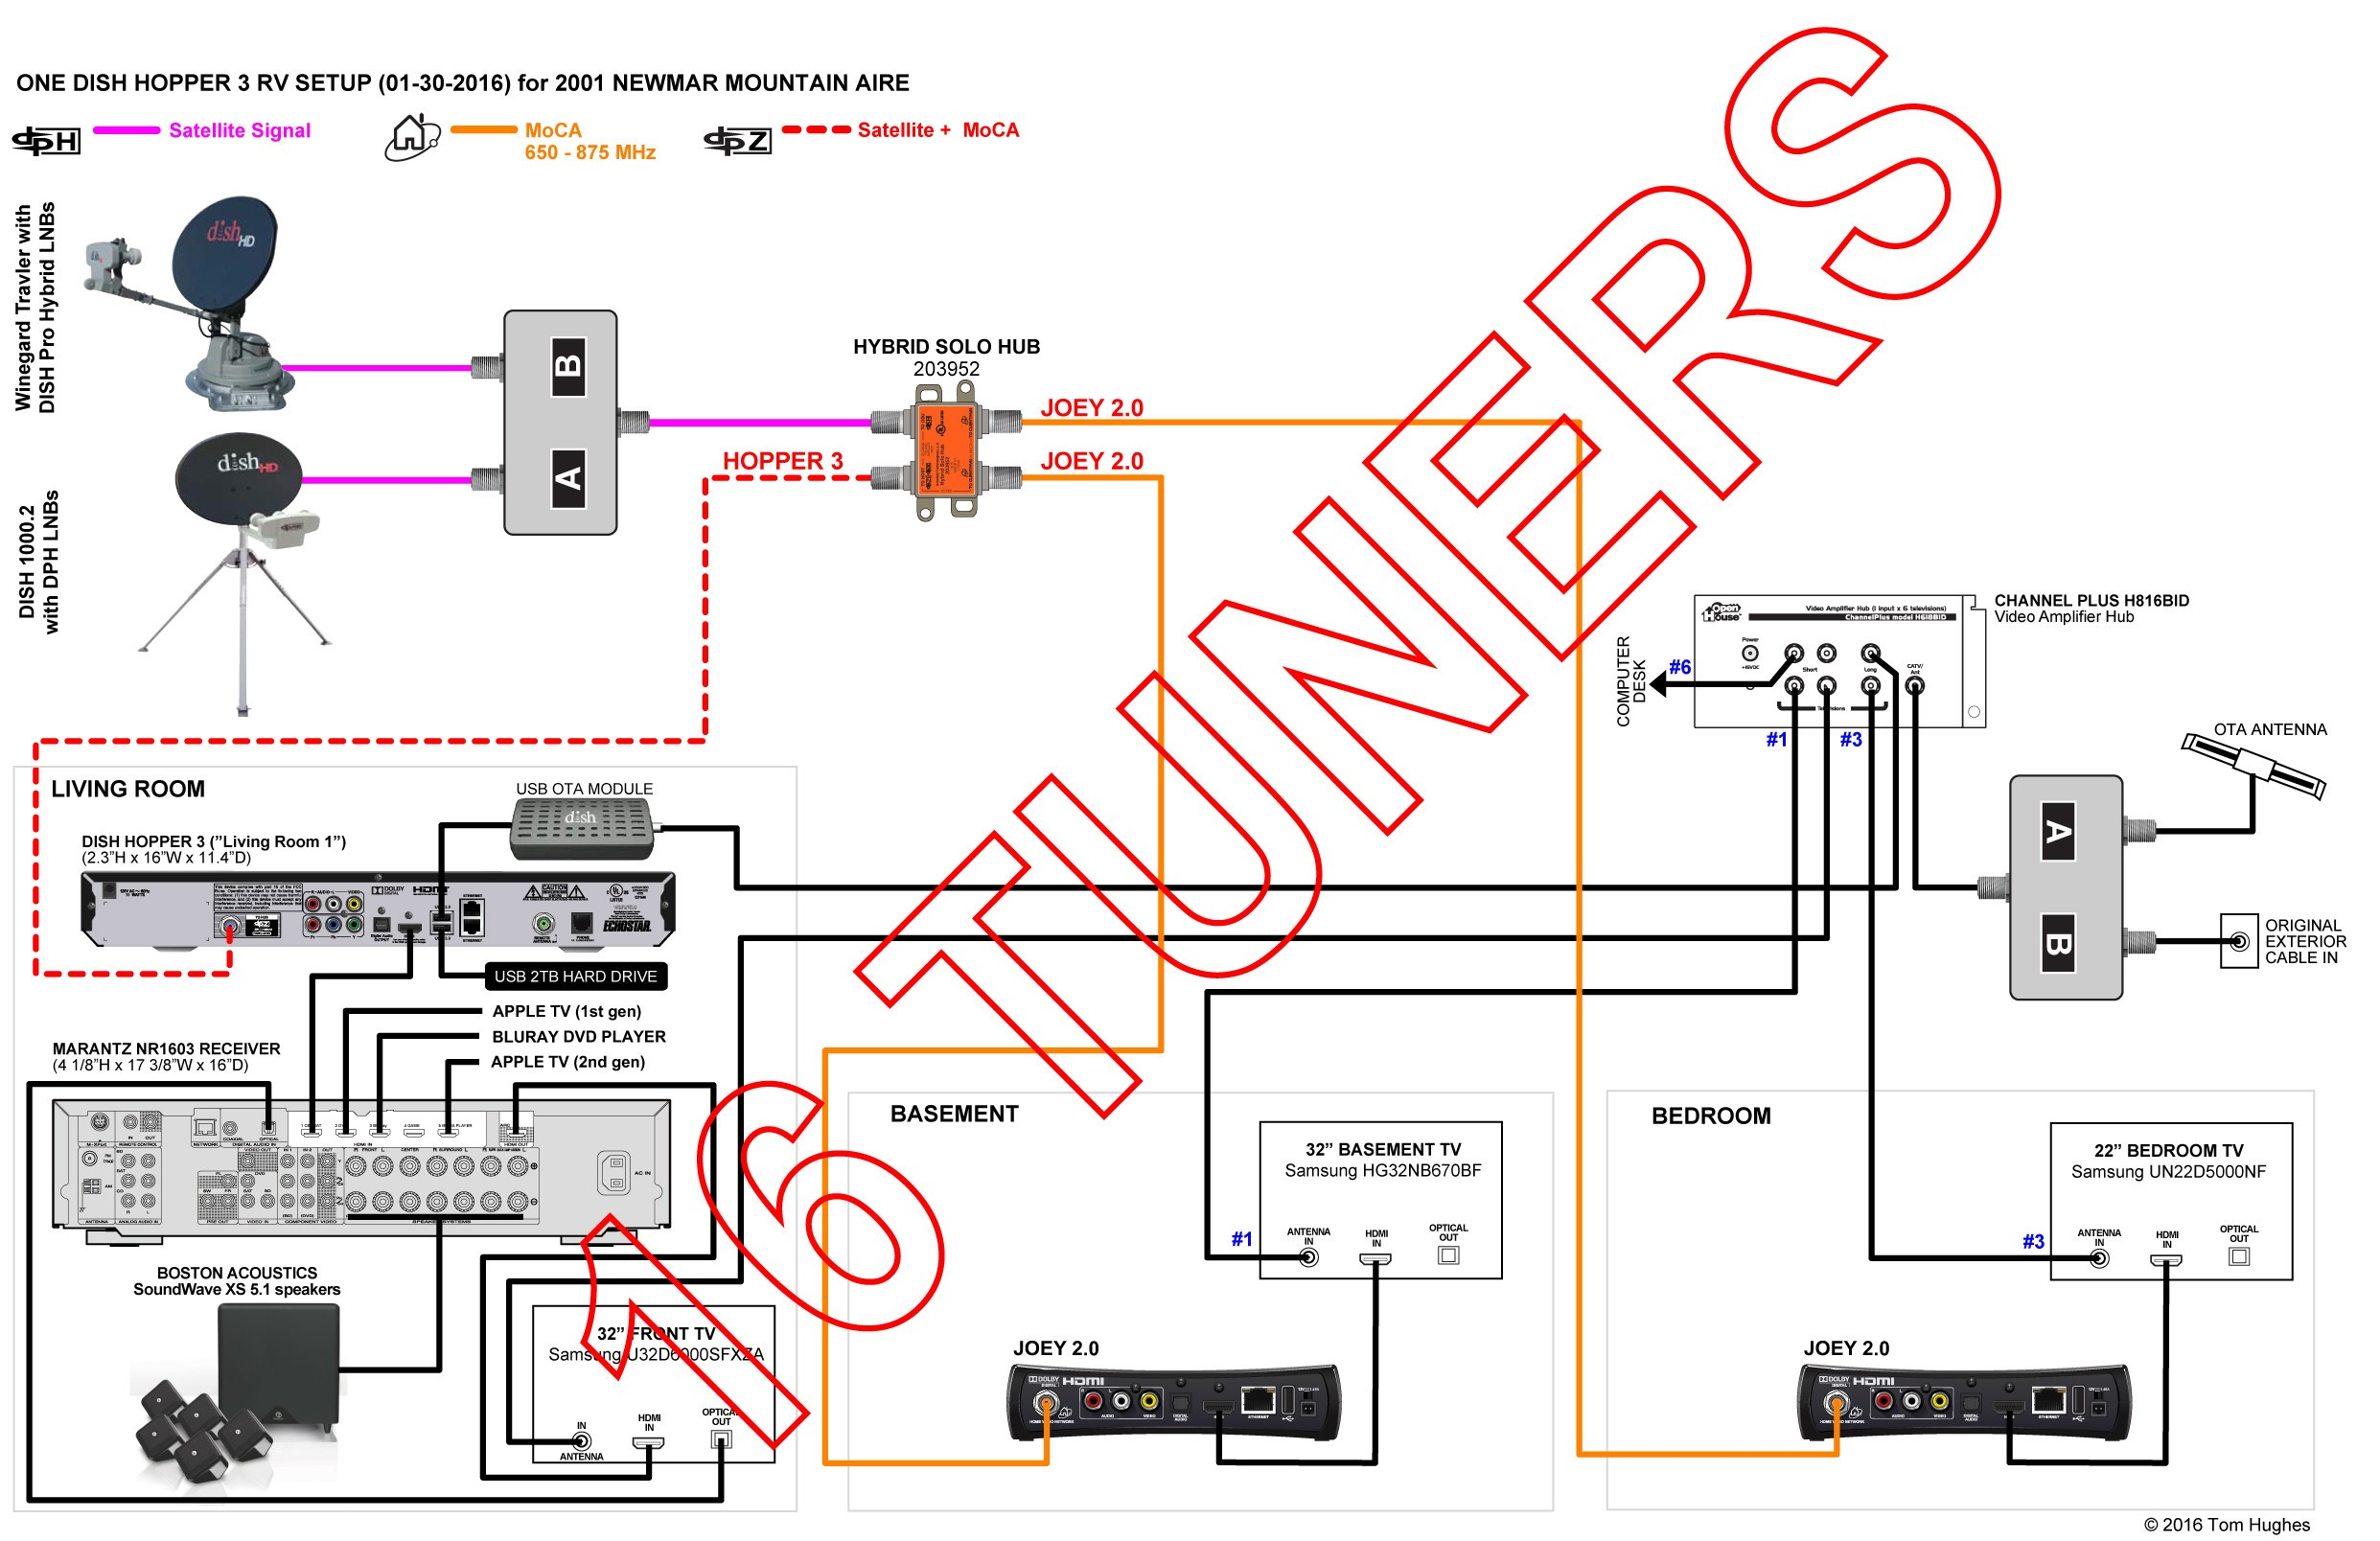 Apple Tv Wiring Diagram Inspirationa Hopper 3 Wiring Diagram Fresh 1 Hopper 3 1 30 2016